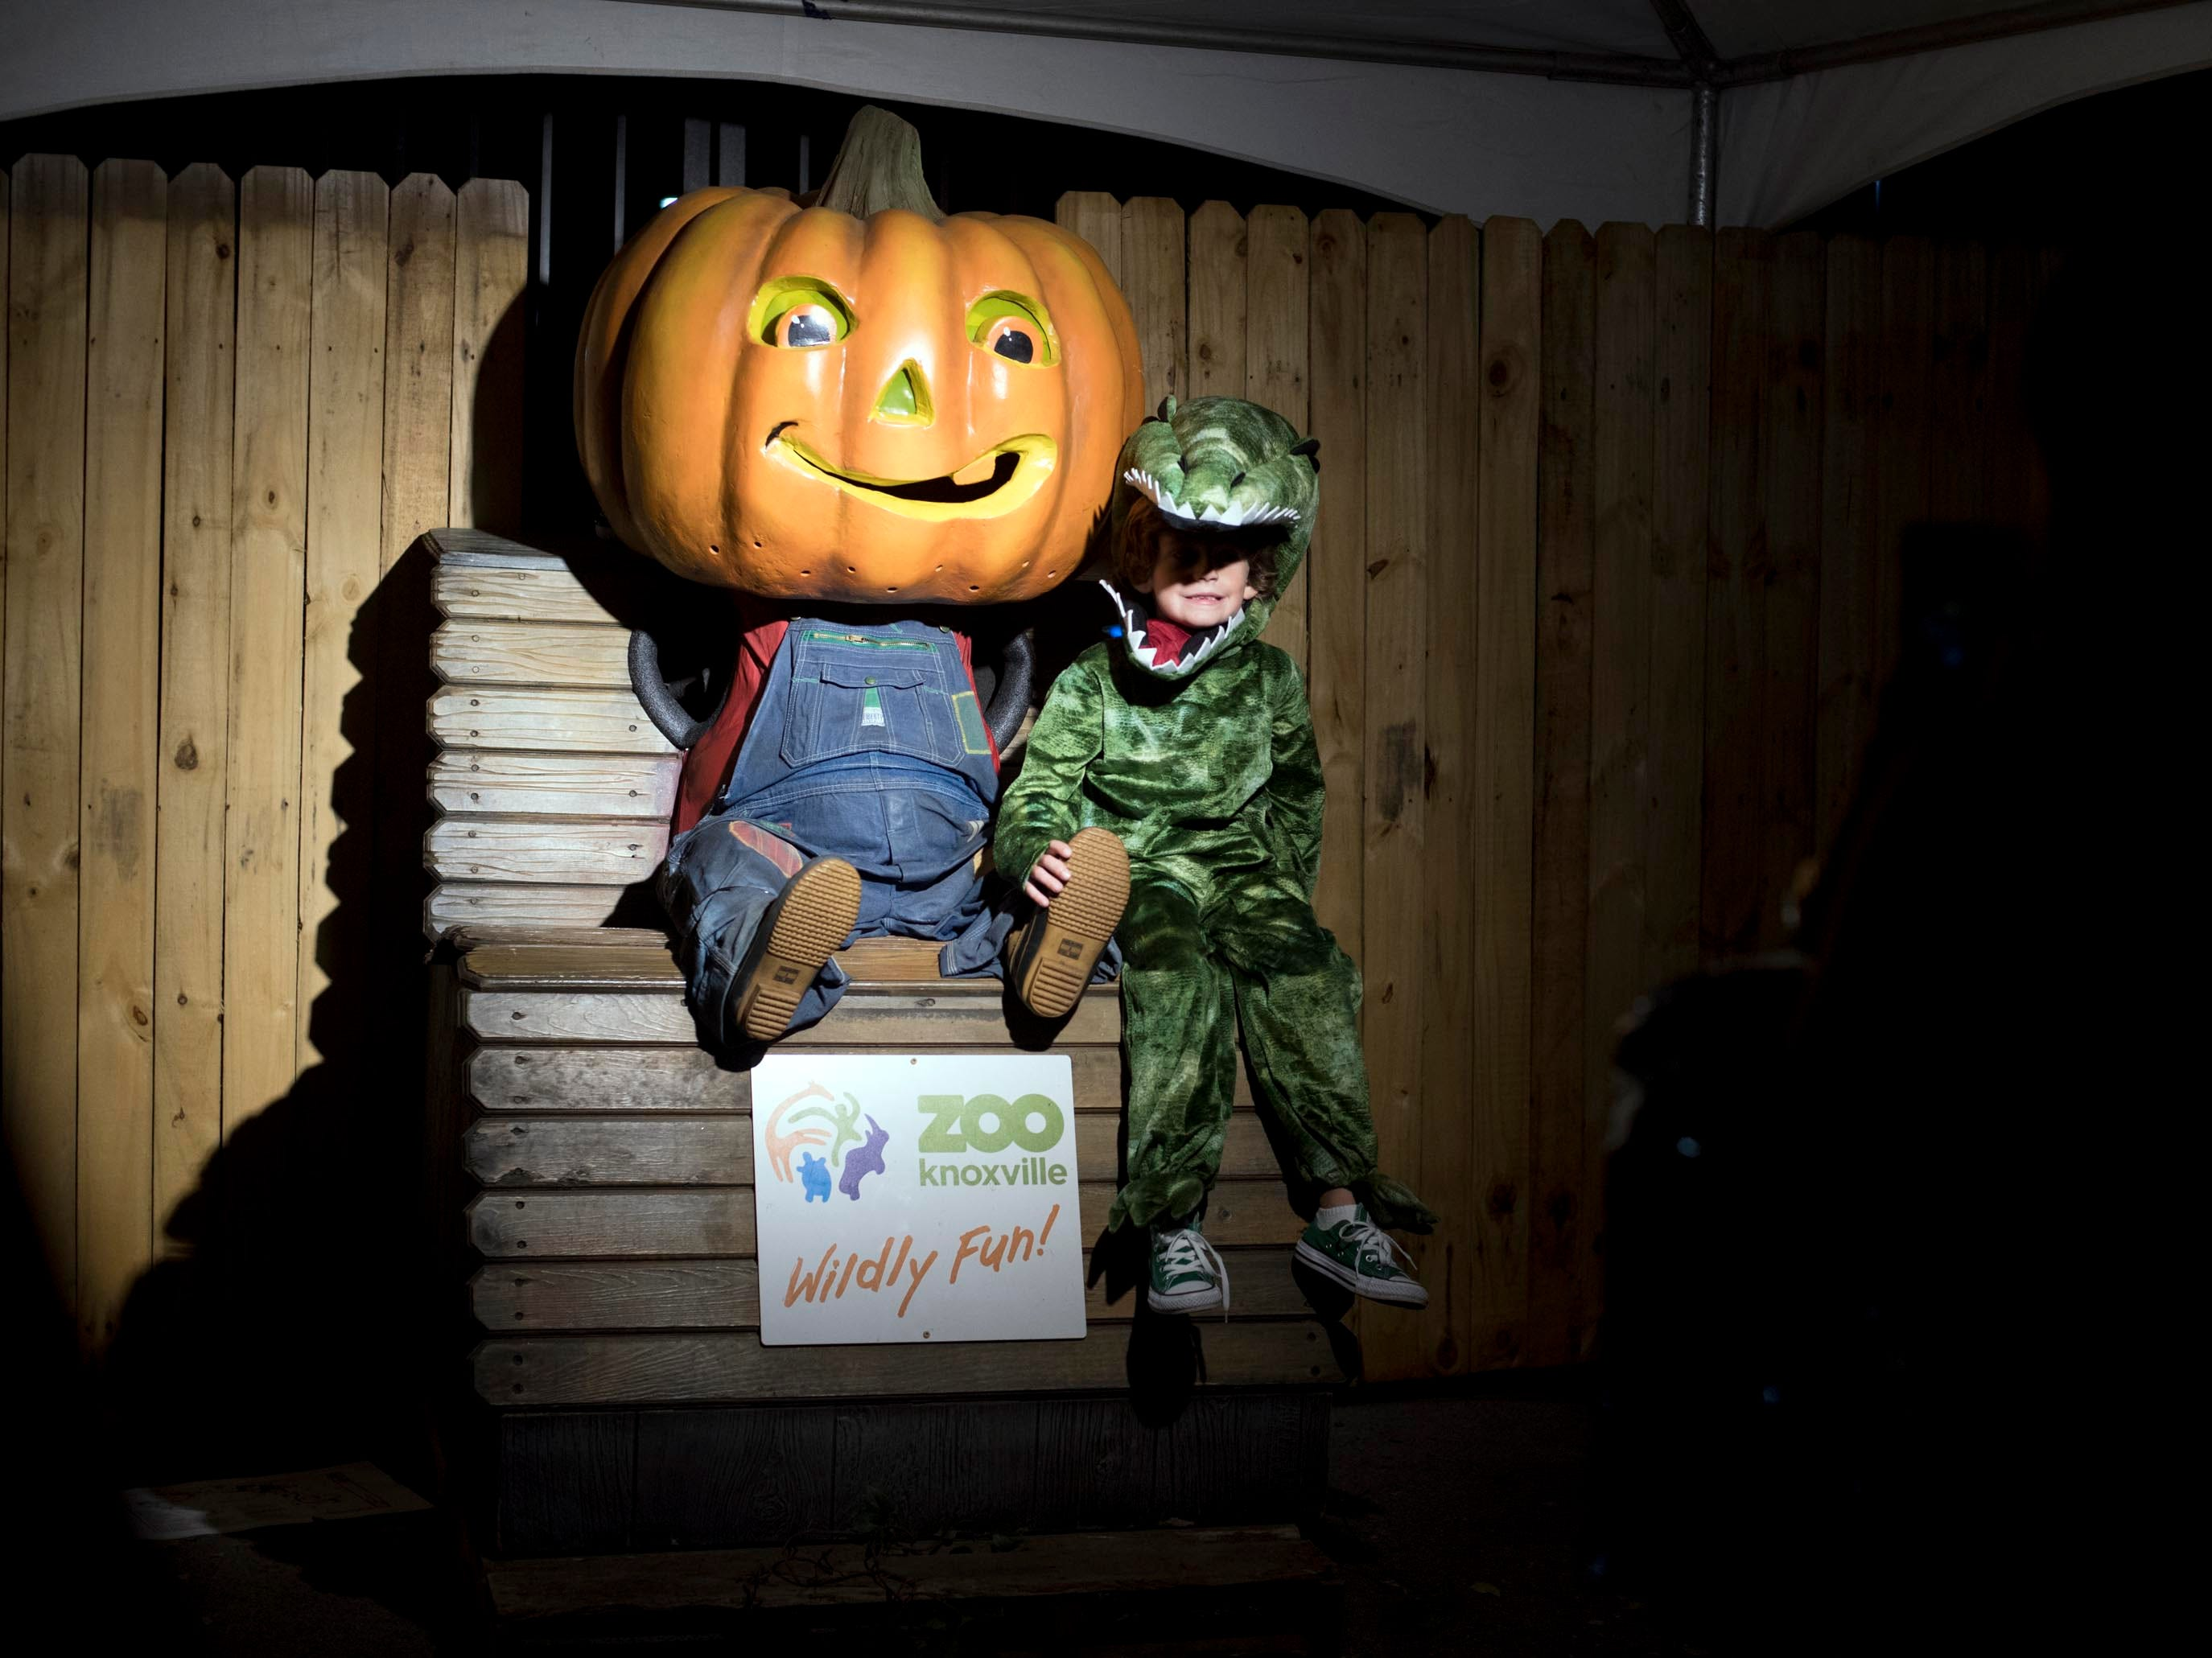 A dinosaur sits with a jack-o-lantern prop for a photograph at Zoo Knoxville's Boo! at the Zoo on Saturday, October 20, 2018.